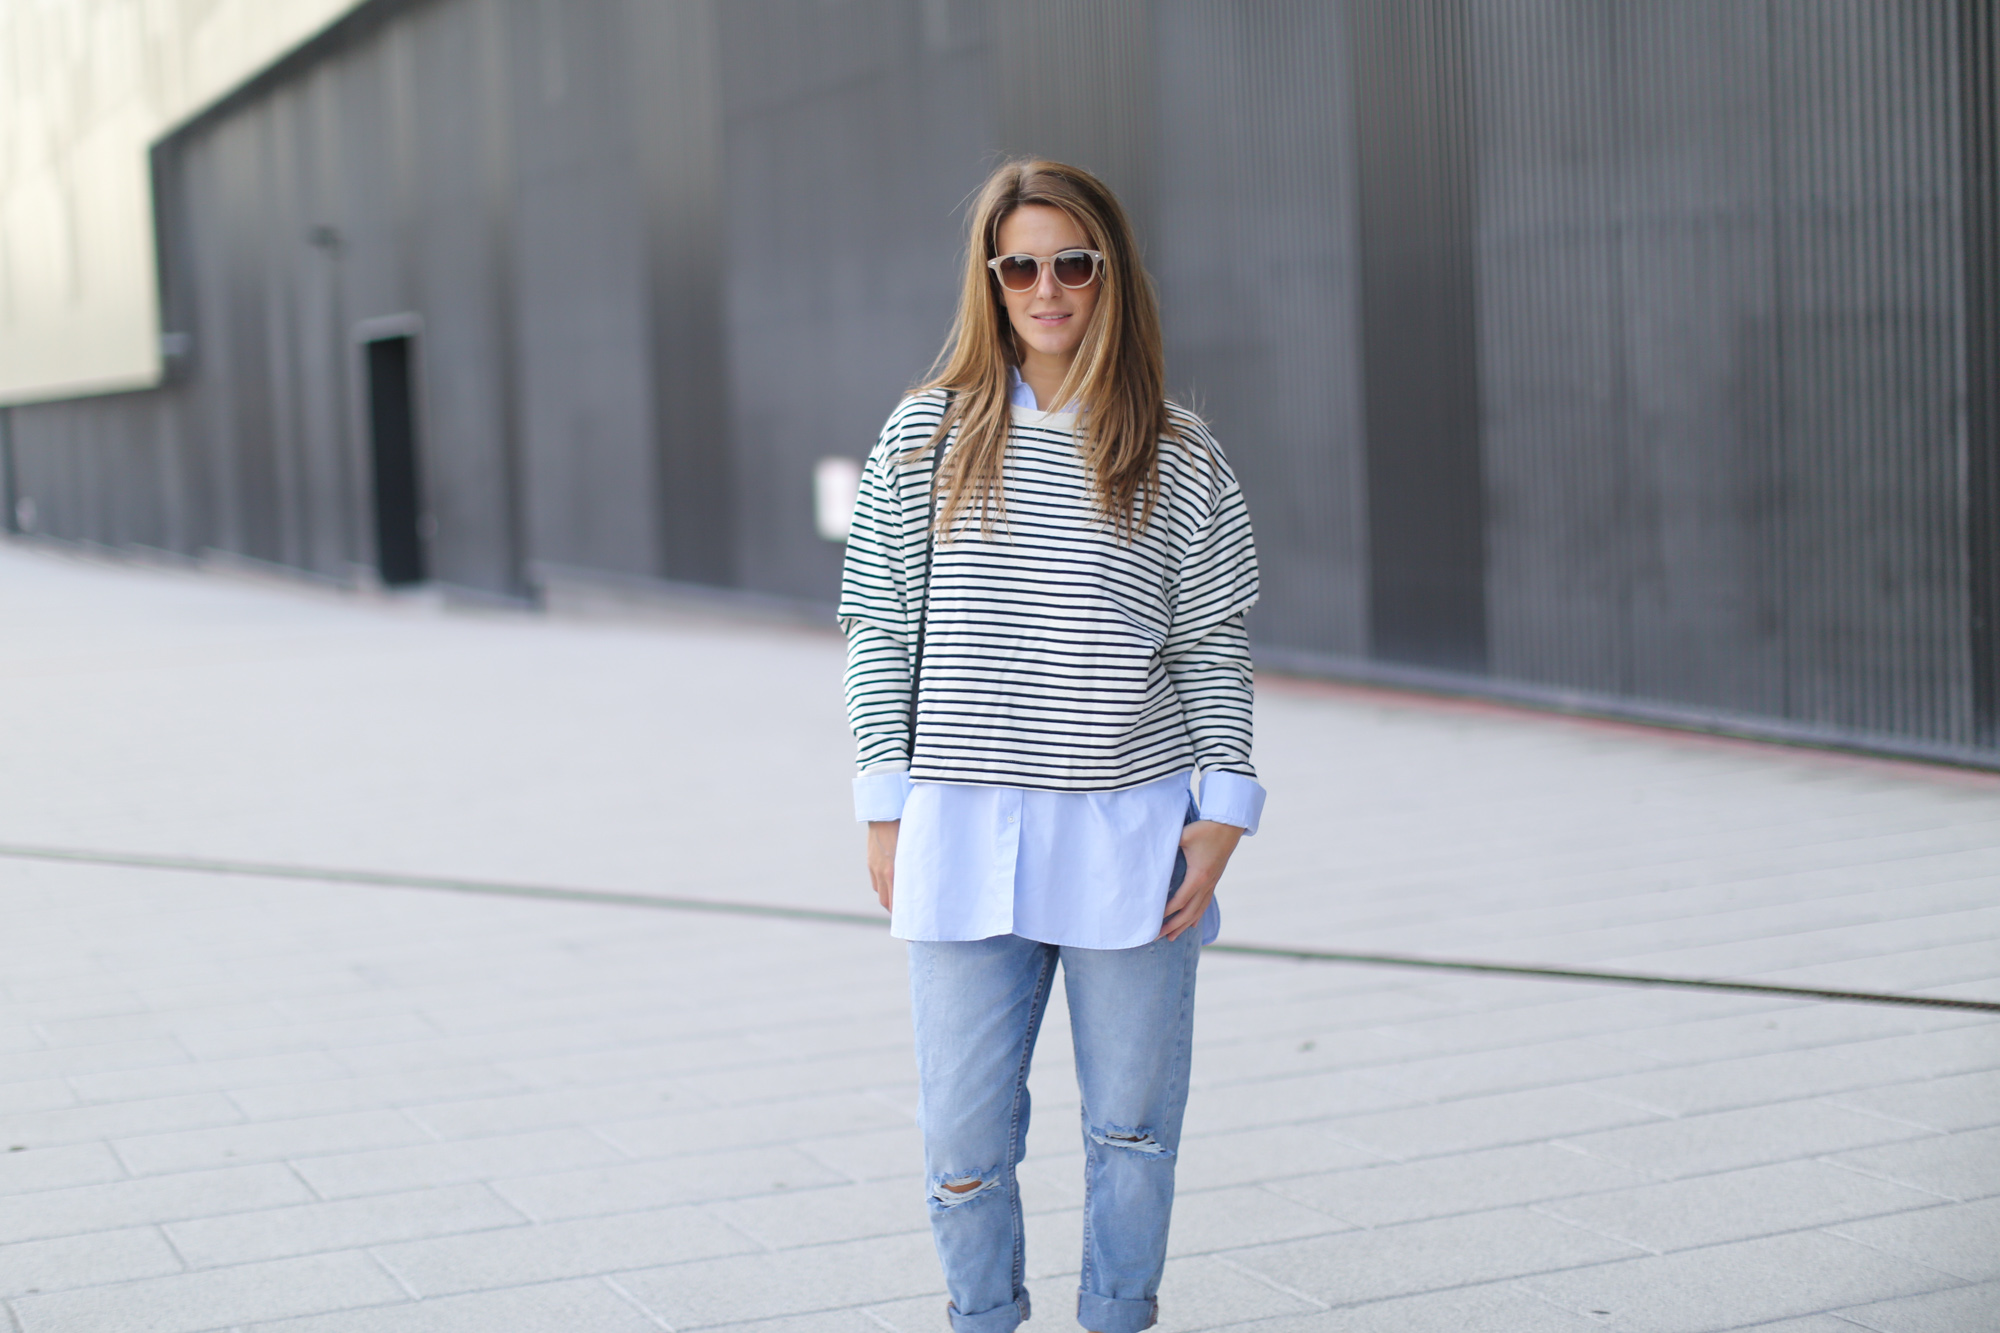 Clochet-streetstyle-suiteblanco-boyfriend-jeans-striped-sweater-adidas-stan-smith-13